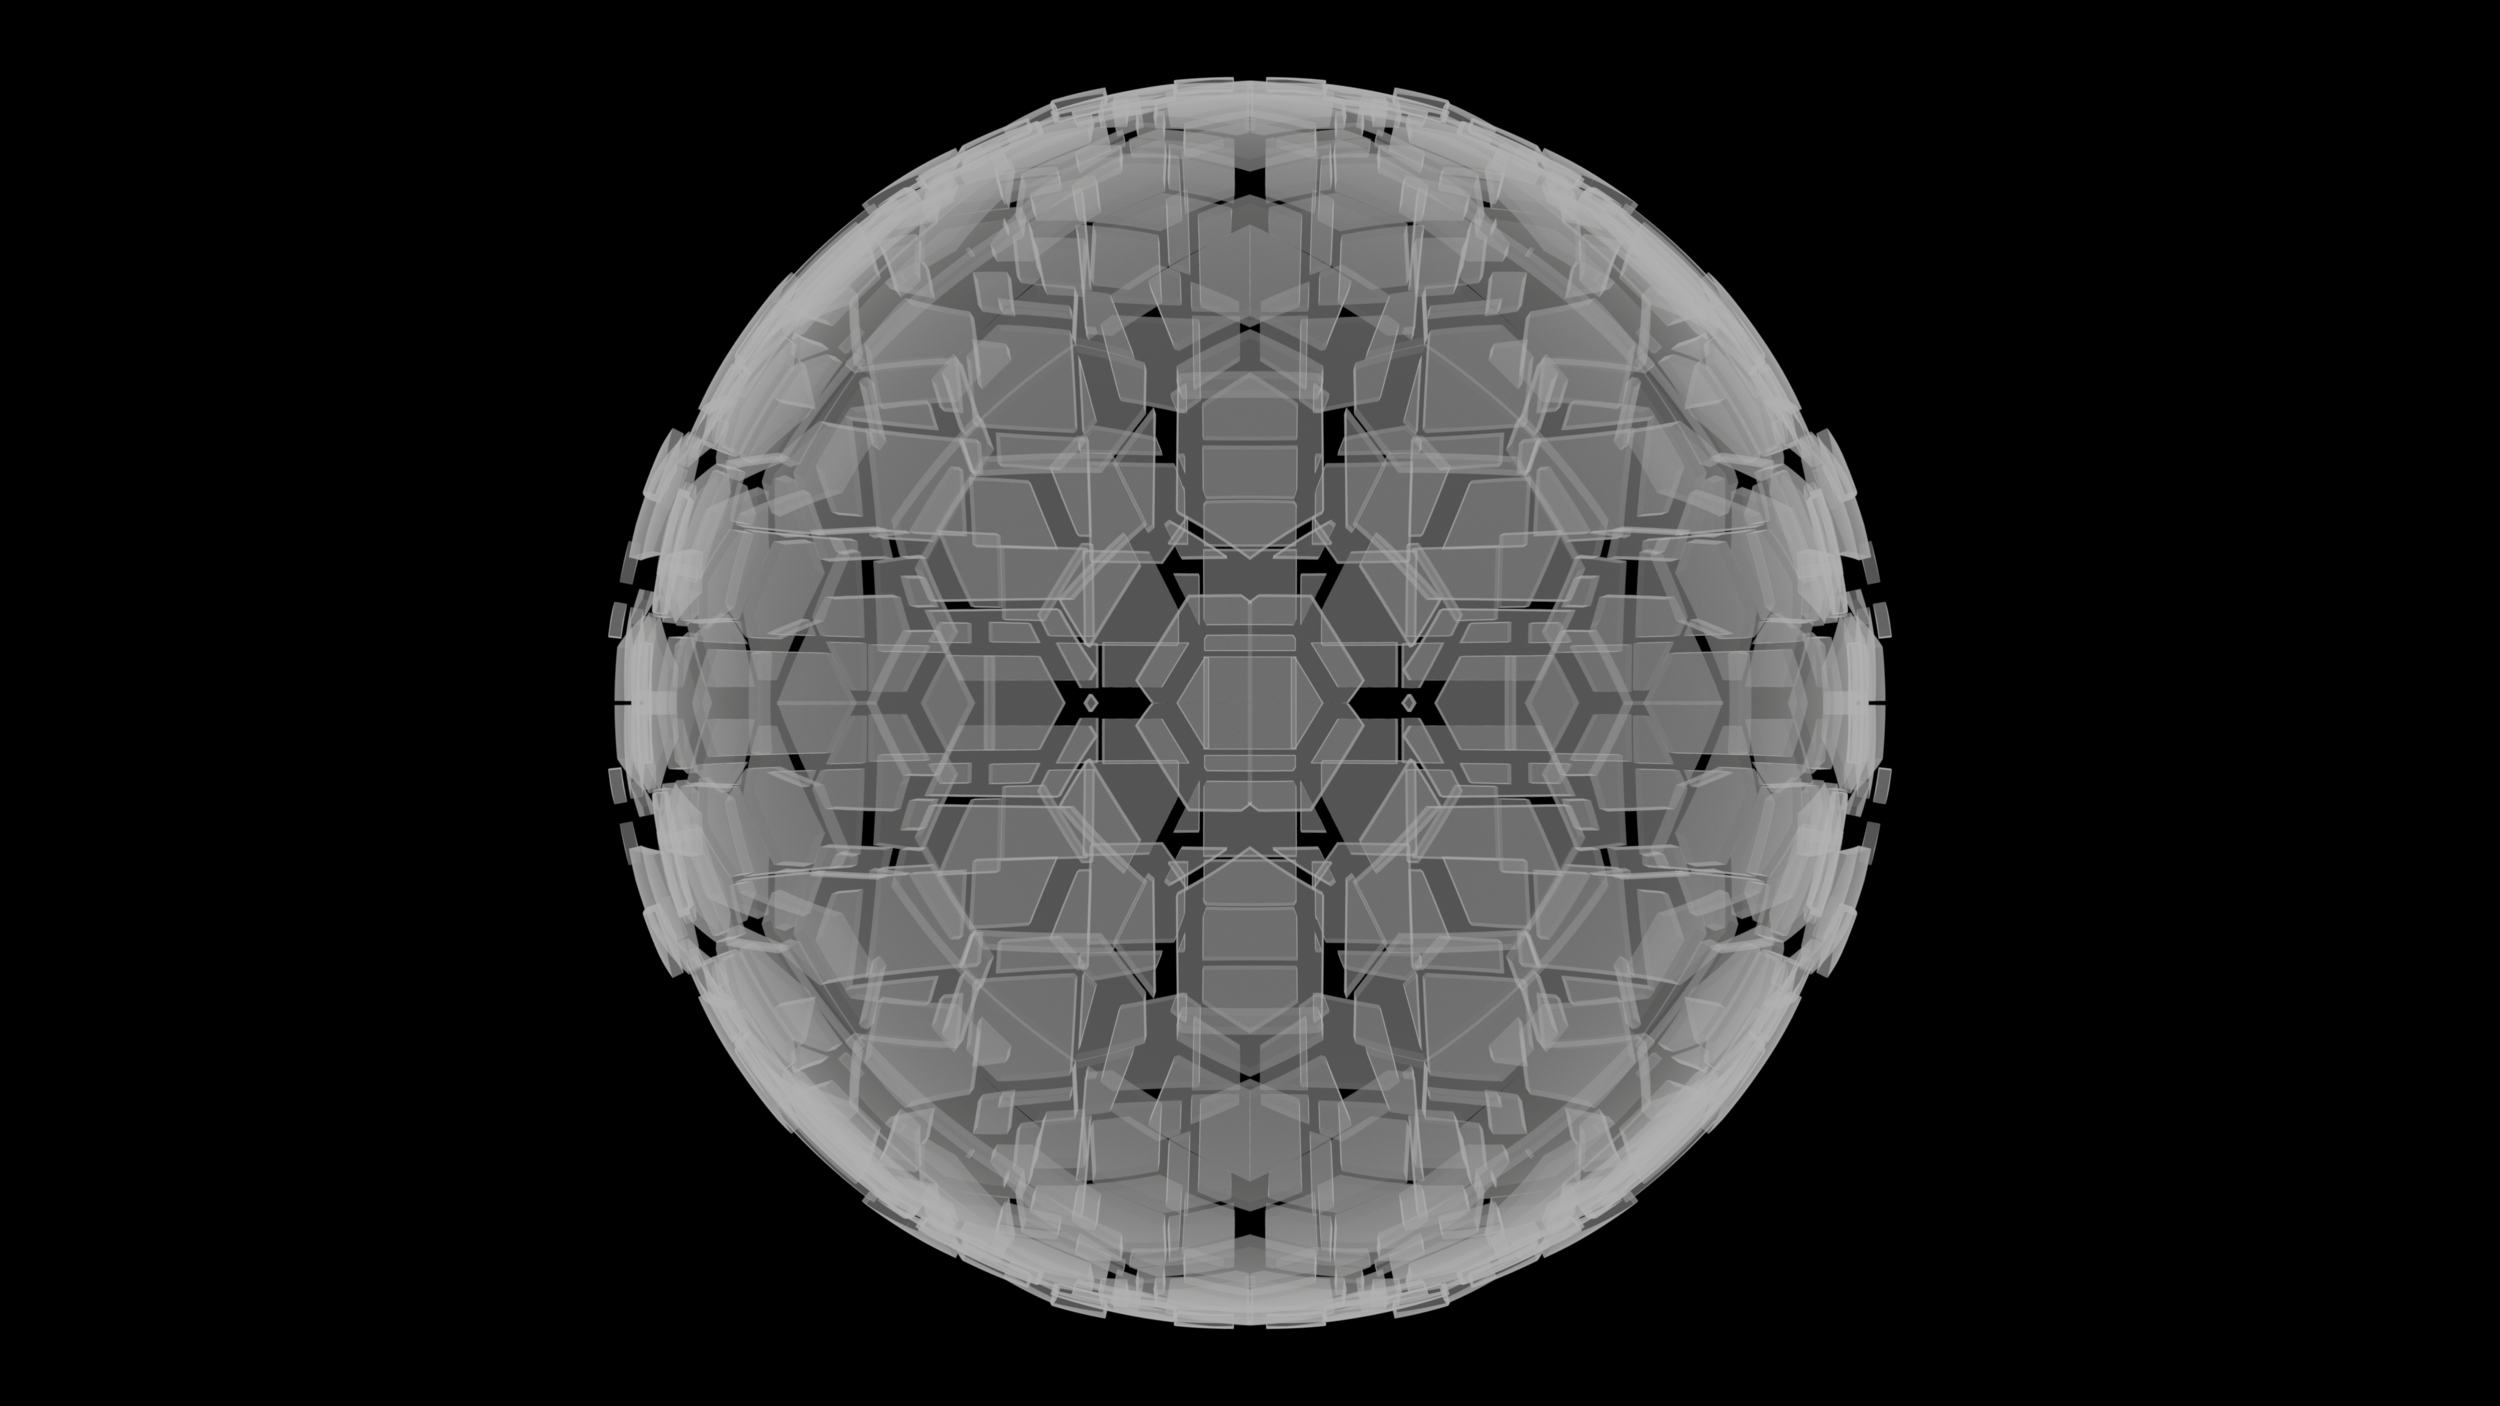 hex sphere fracture 04.png